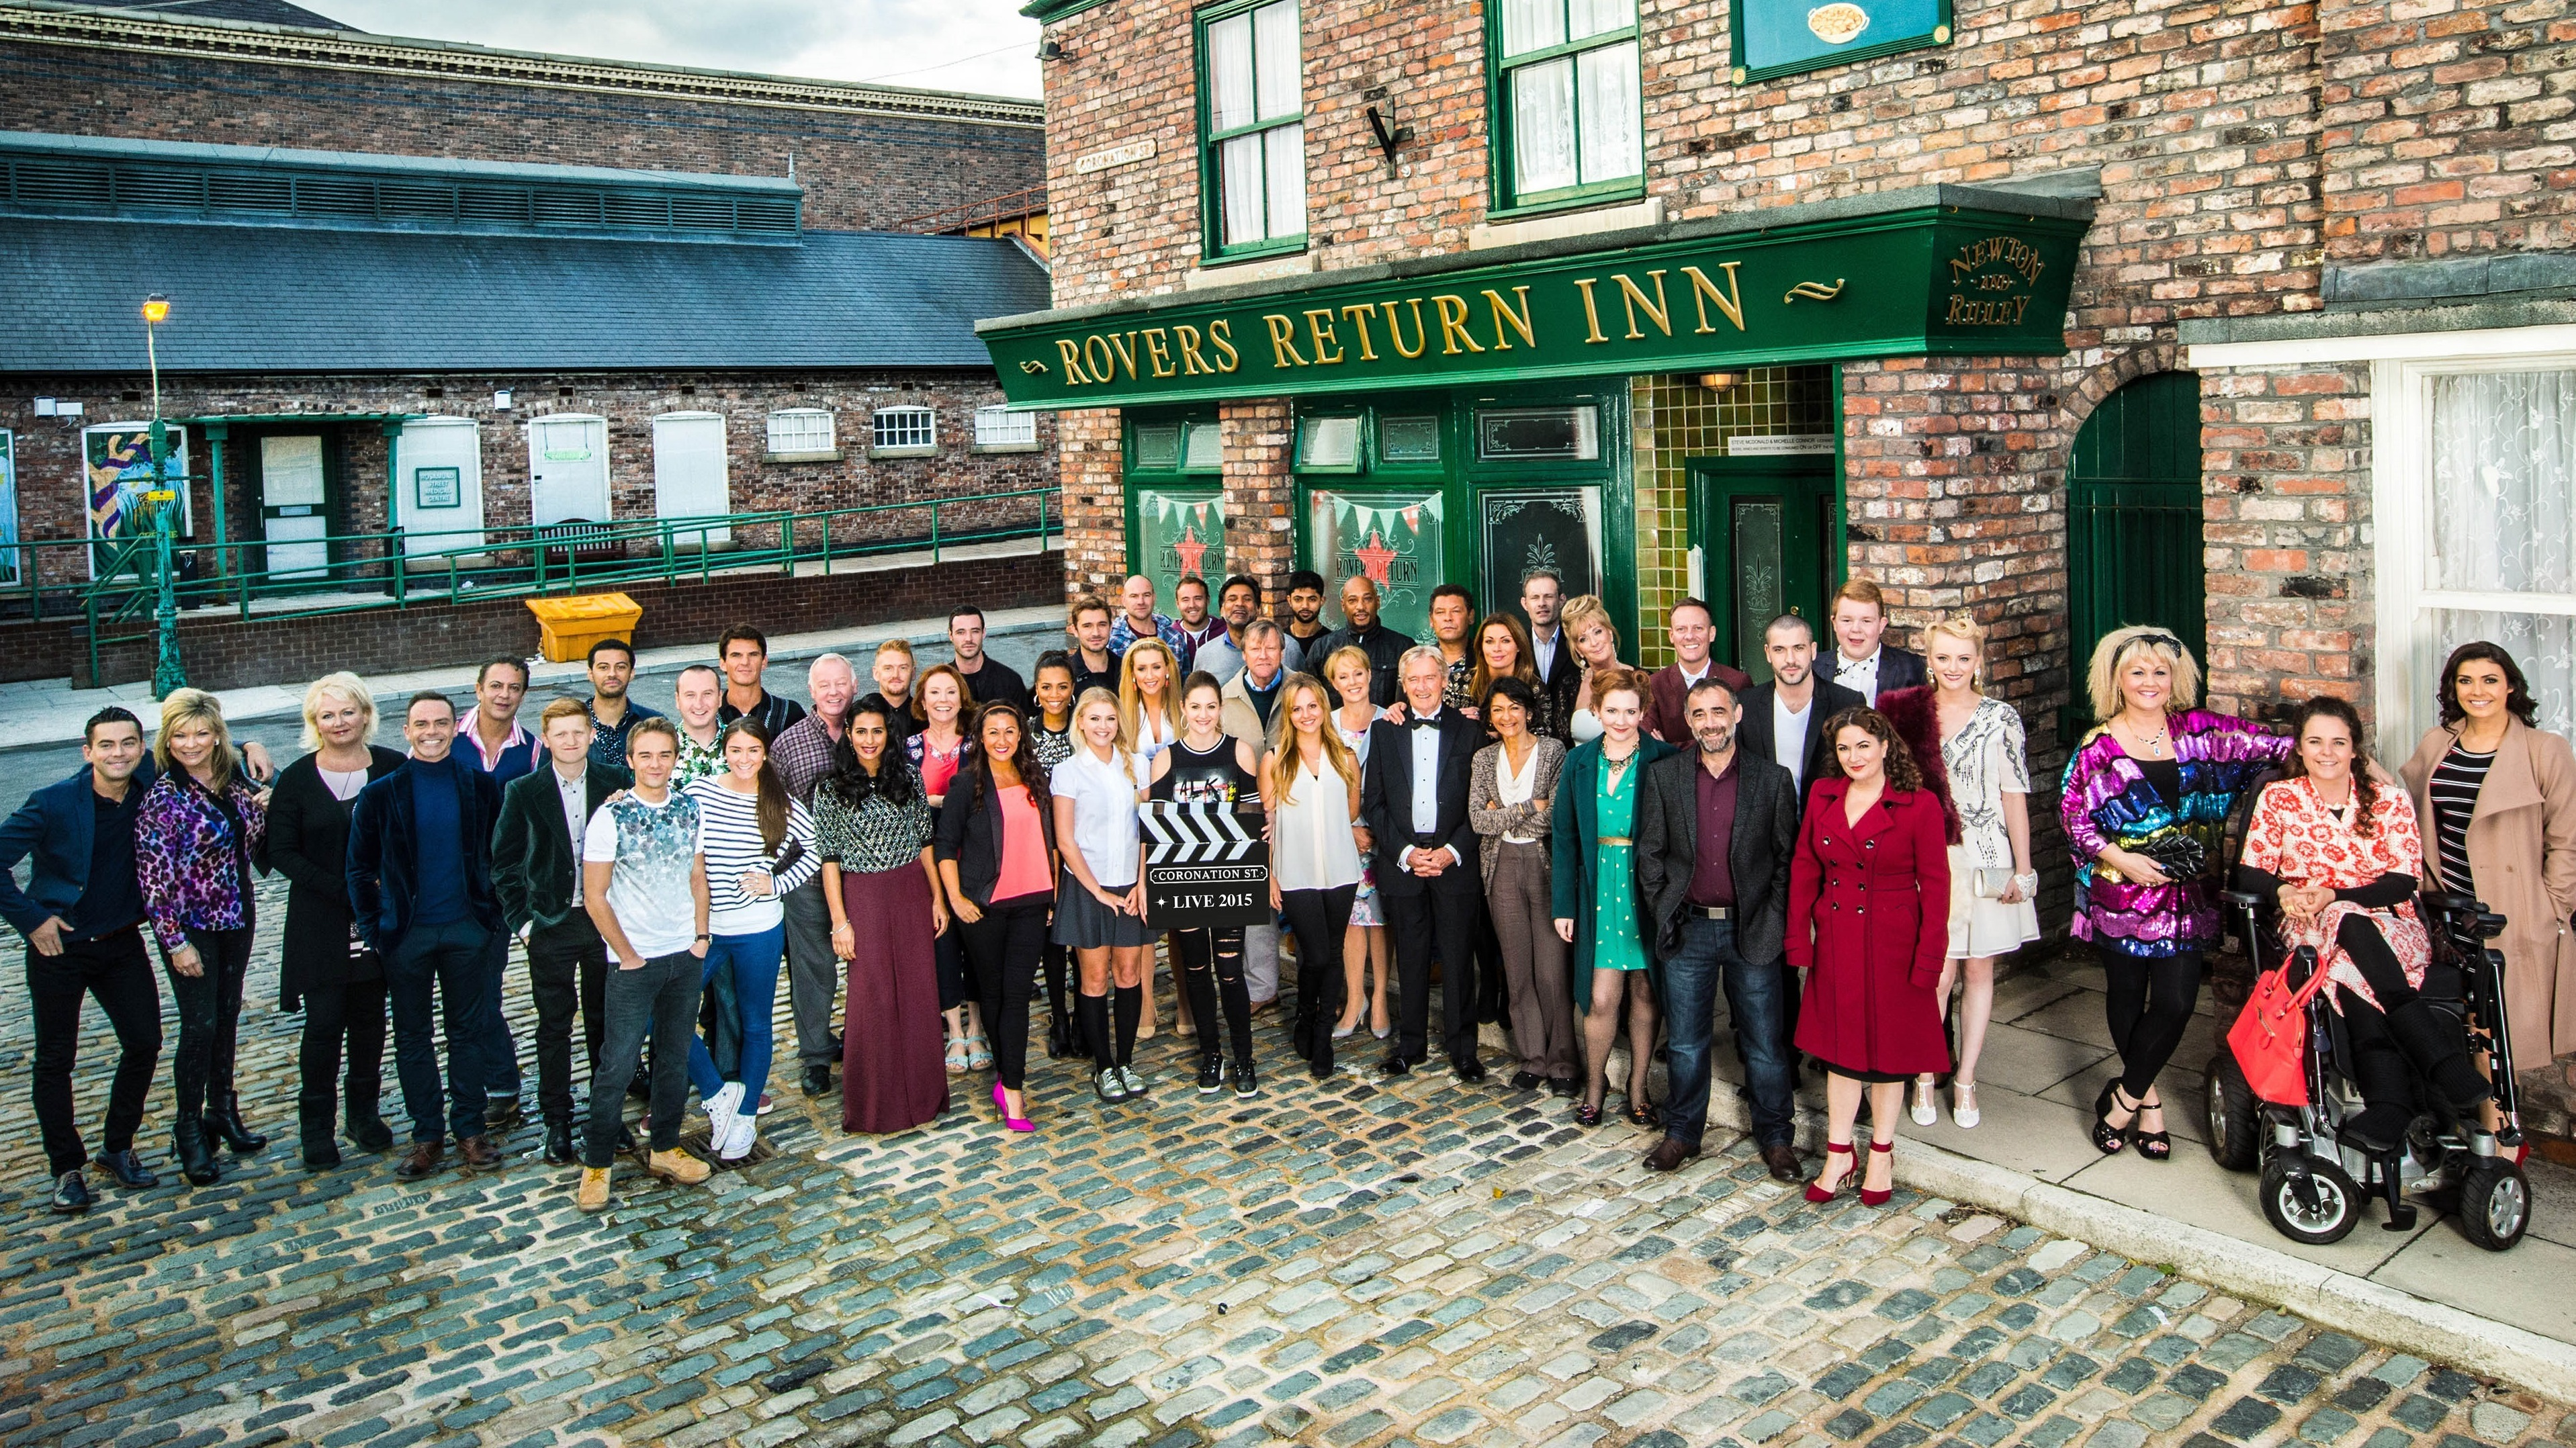 Calendar News Catch Up Itv Calendar Missed Any Of Calendar This Week Catch Up Coronation Street Cast Pose For Photo Ahead Of Live